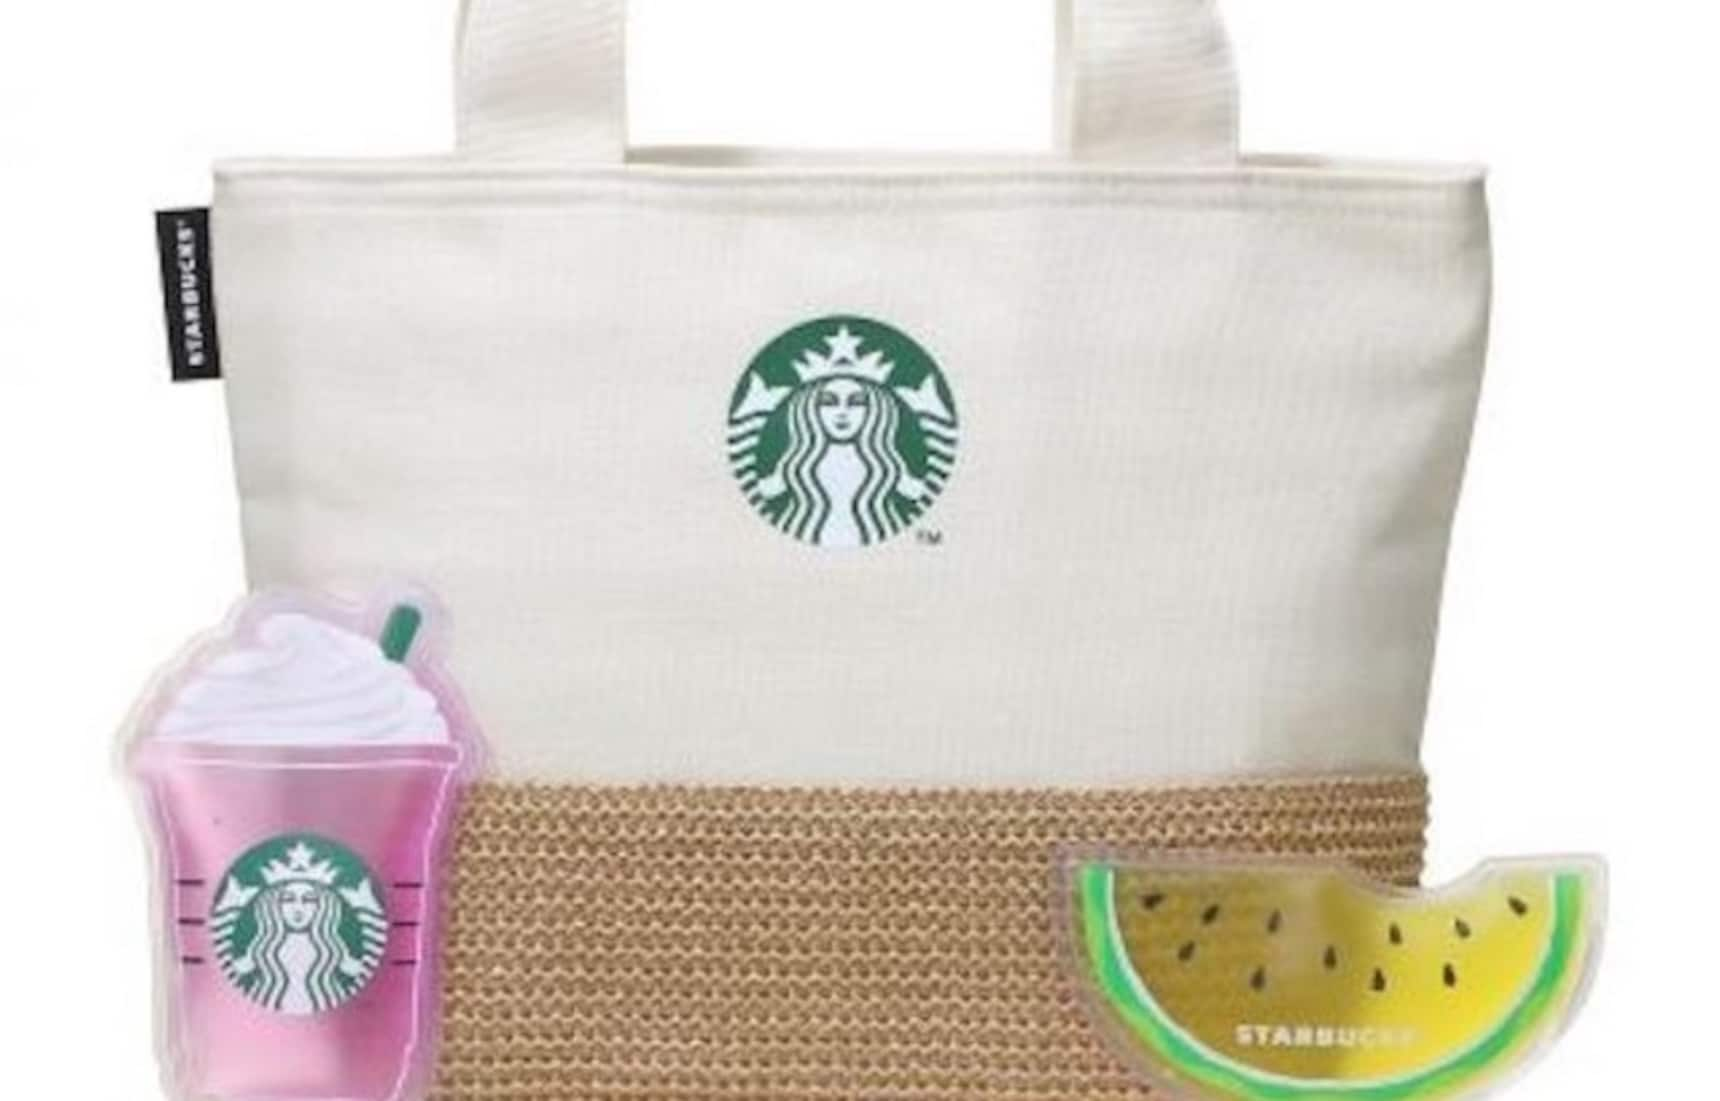 Stay Cool with New Starbucks Summer Merch